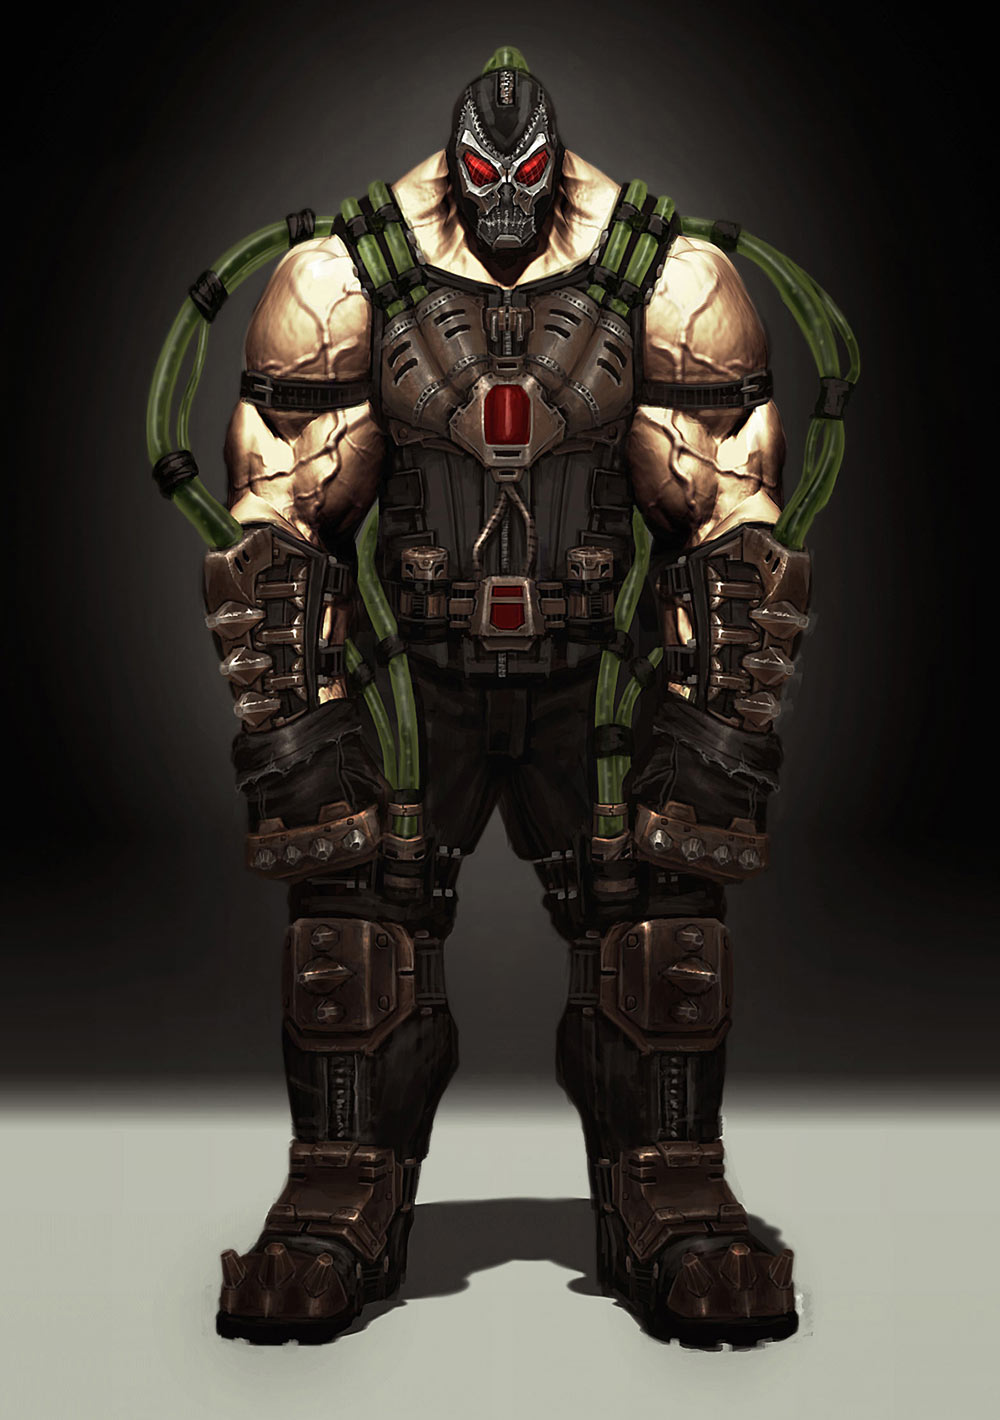 Concept Art Injustice Concept Art of Bane 1